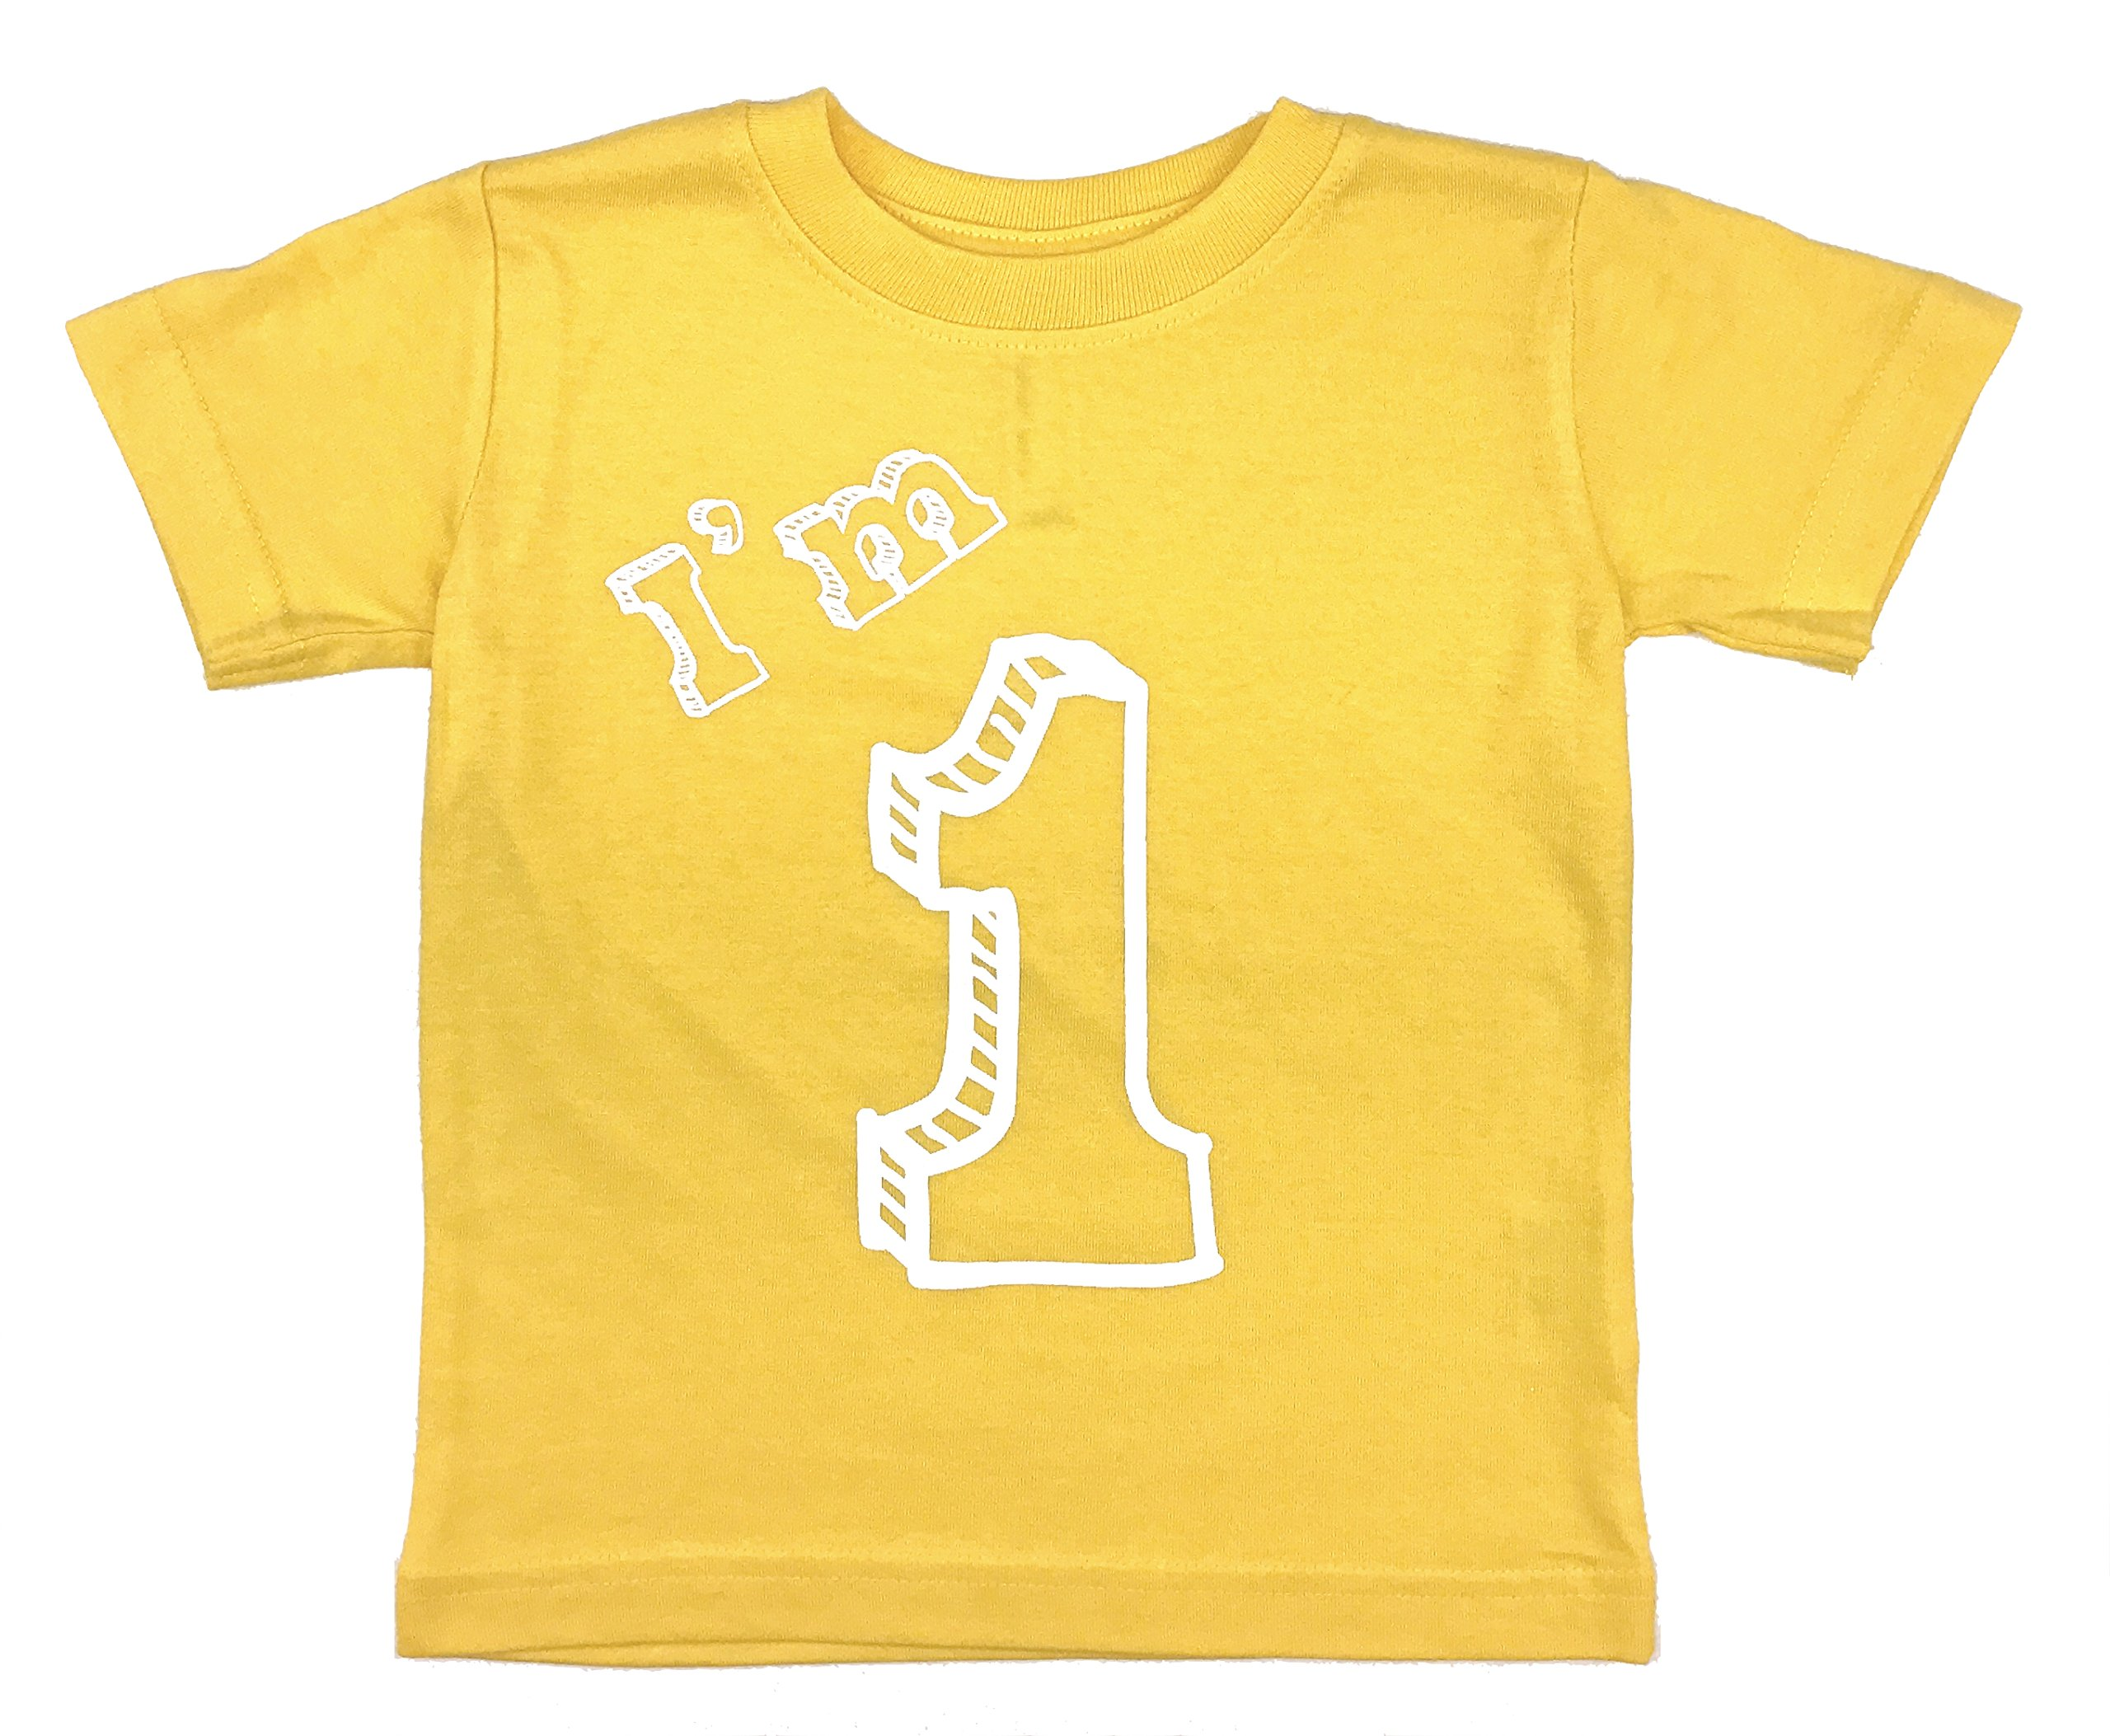 Im 1 T-Shirt One Year Old Birthday Party